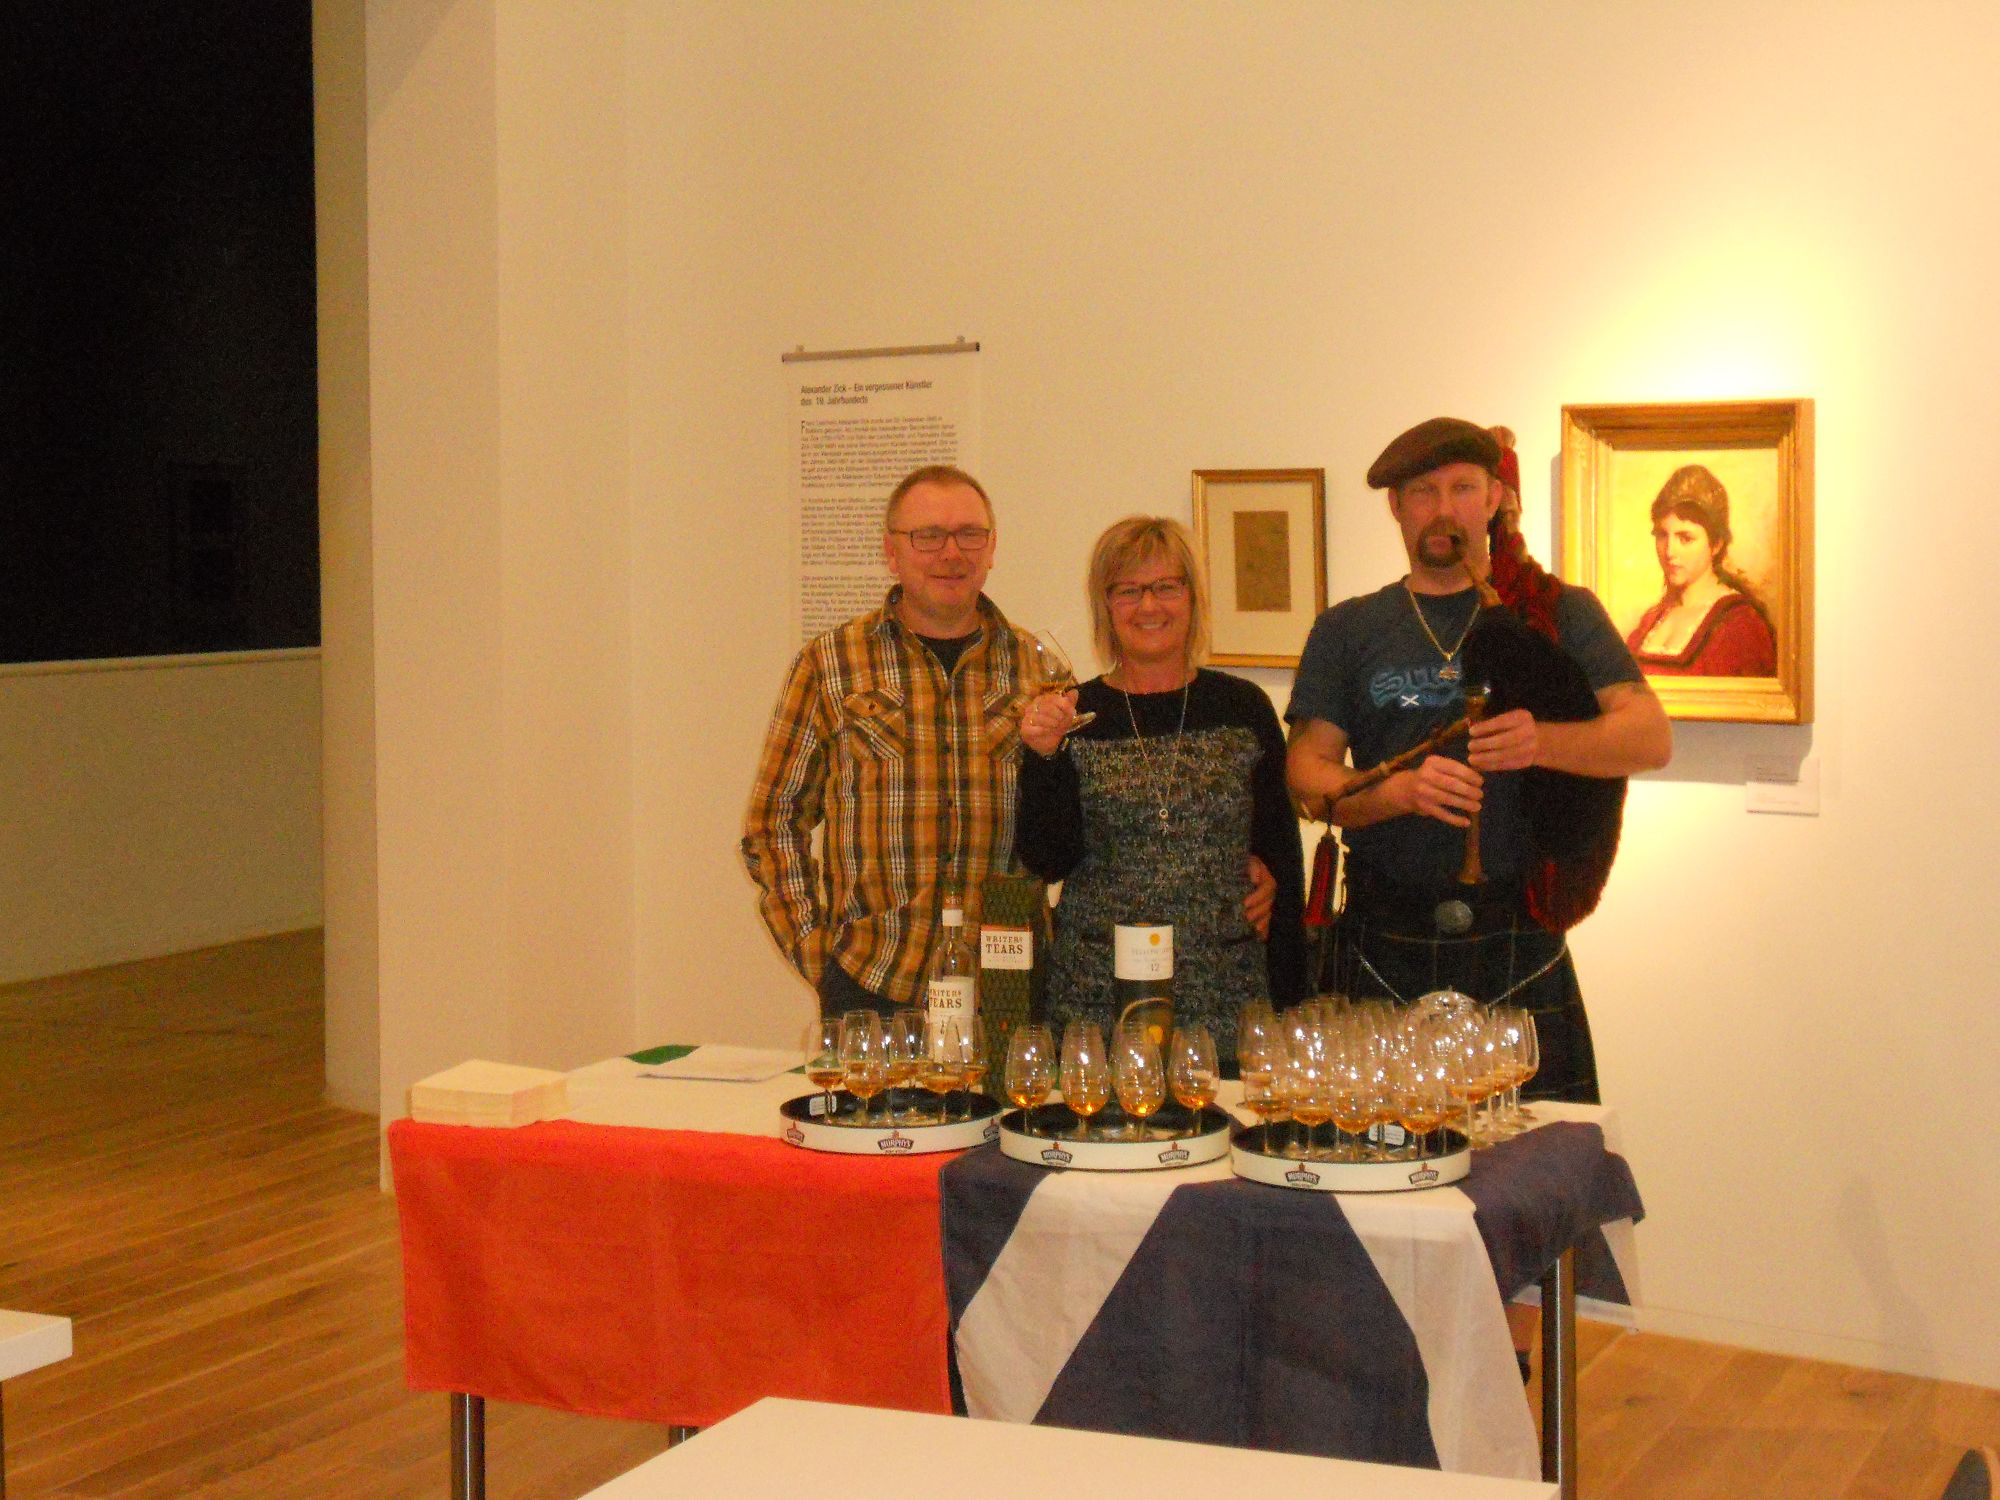 http://pipers-corner.de/media/events/Whisk(e)y-Tasting im Mittelrheinmuseum/k-DSCN3123.JPG